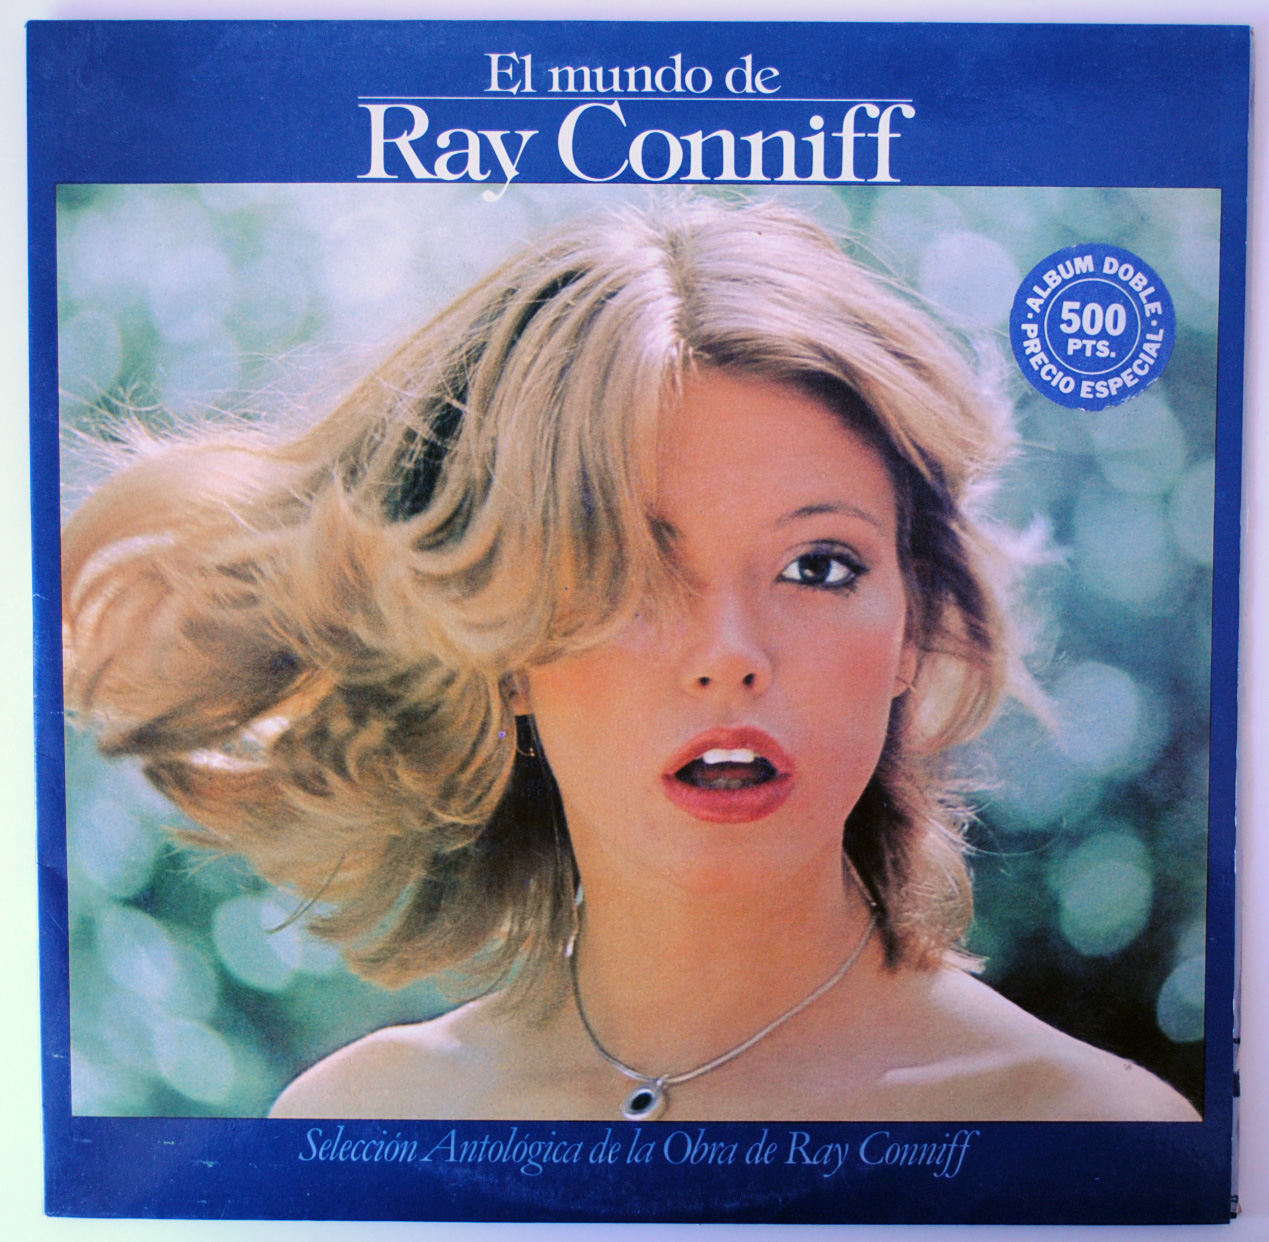 Ray Conniff el mundo de (best of)